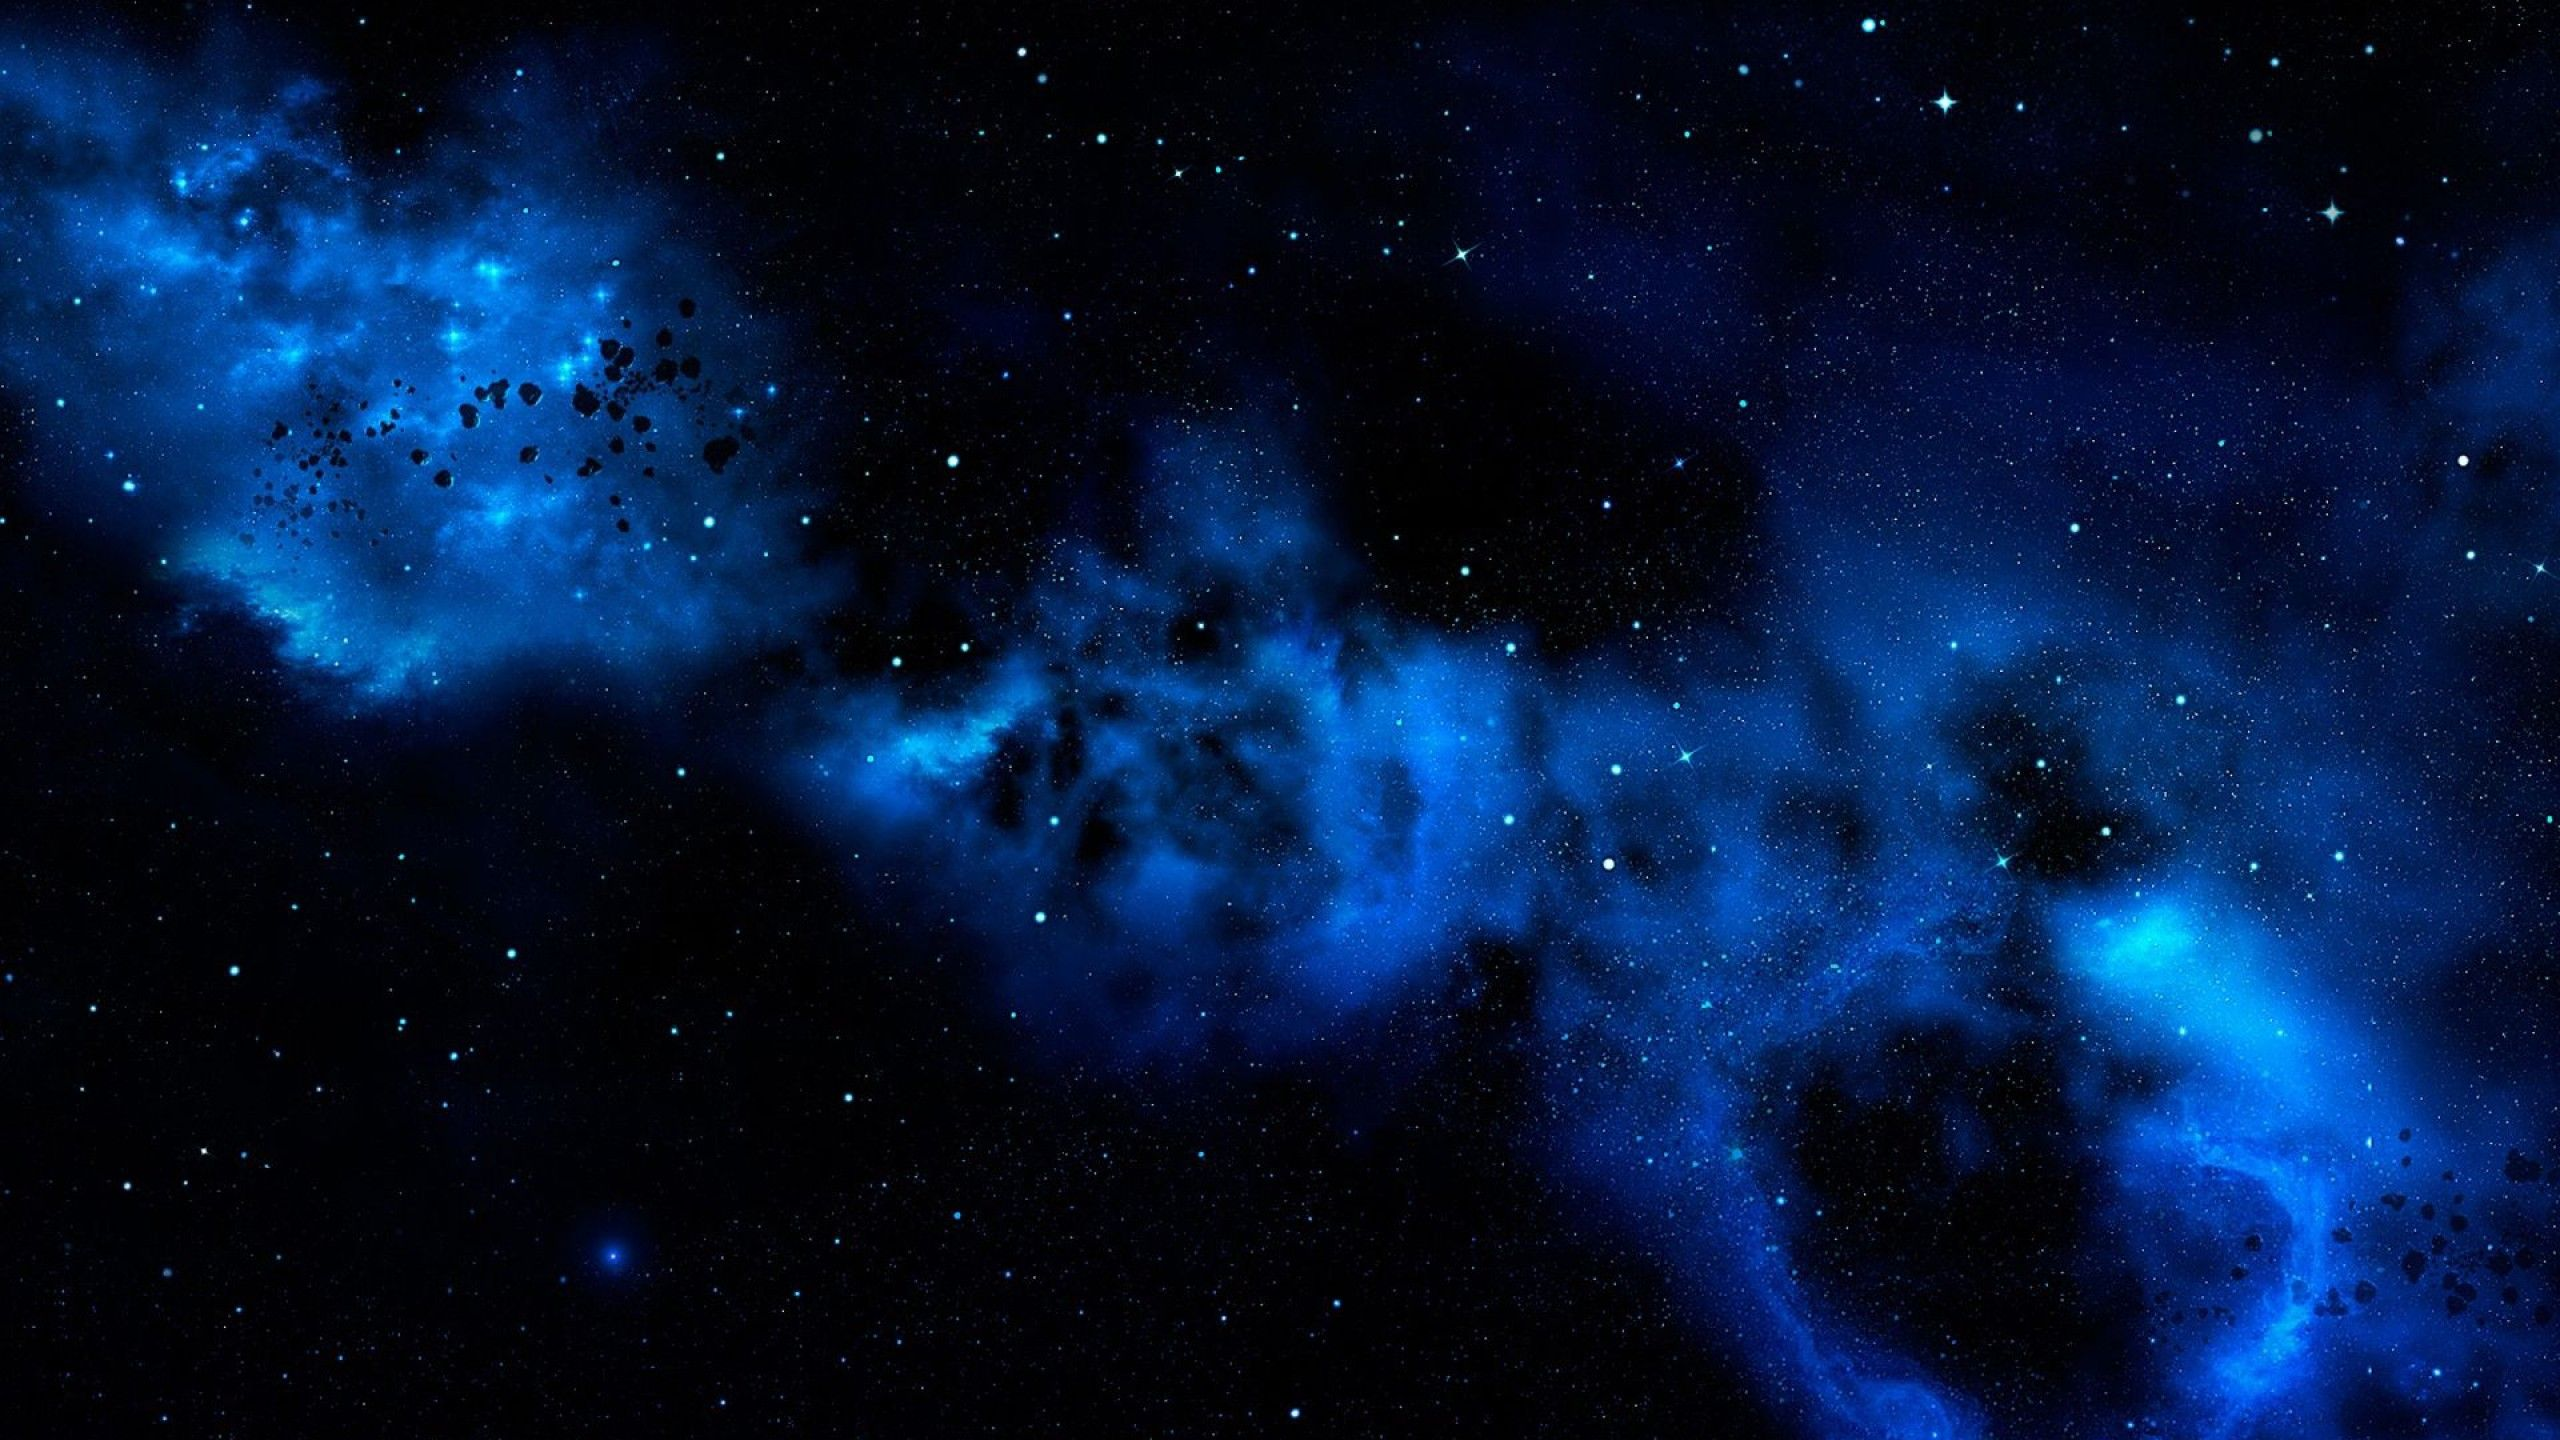 Outer Space Blue Galaxy Wallpaper Galaxy Wallpaper Galaxy Background